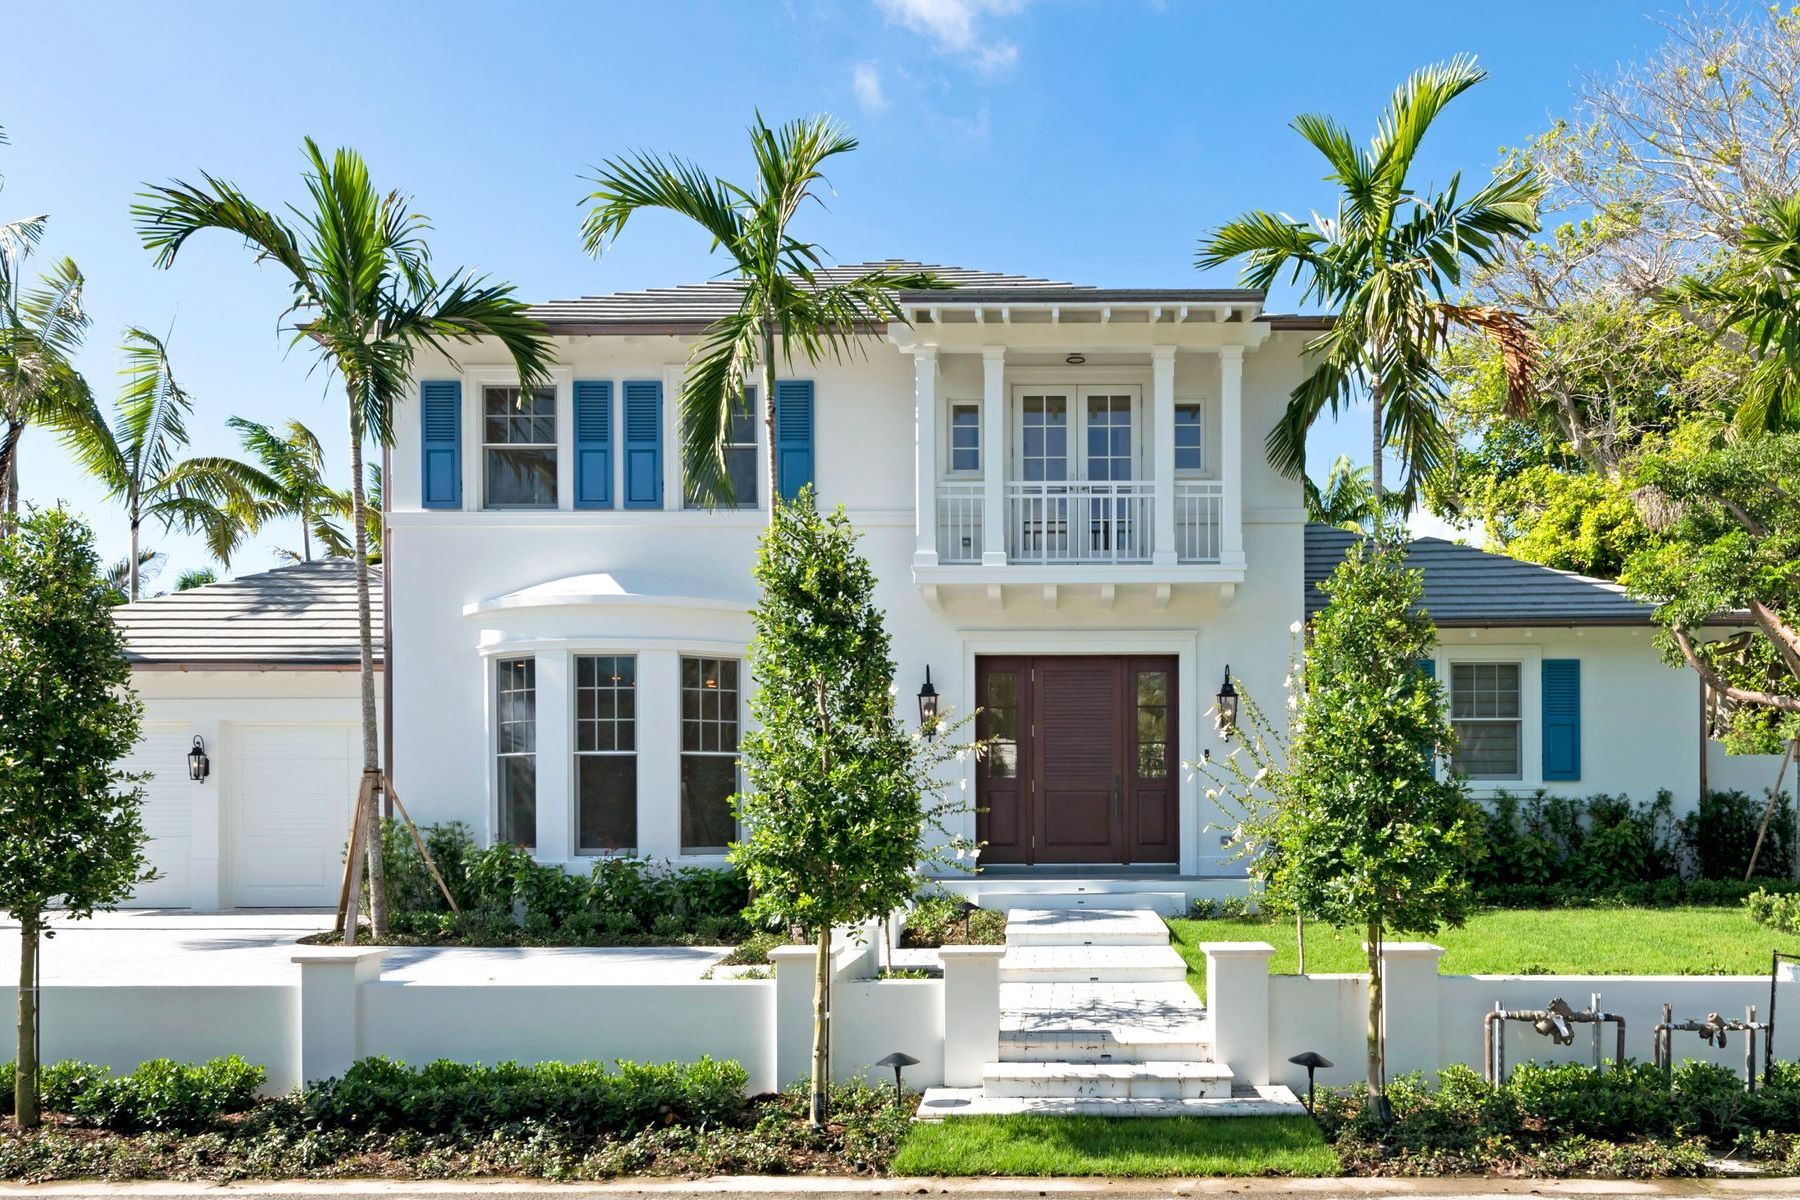 Single Family Homes for Active at Palm Beach New Construction 256 Fairview Rd Palm Beach, Florida 33480 United States